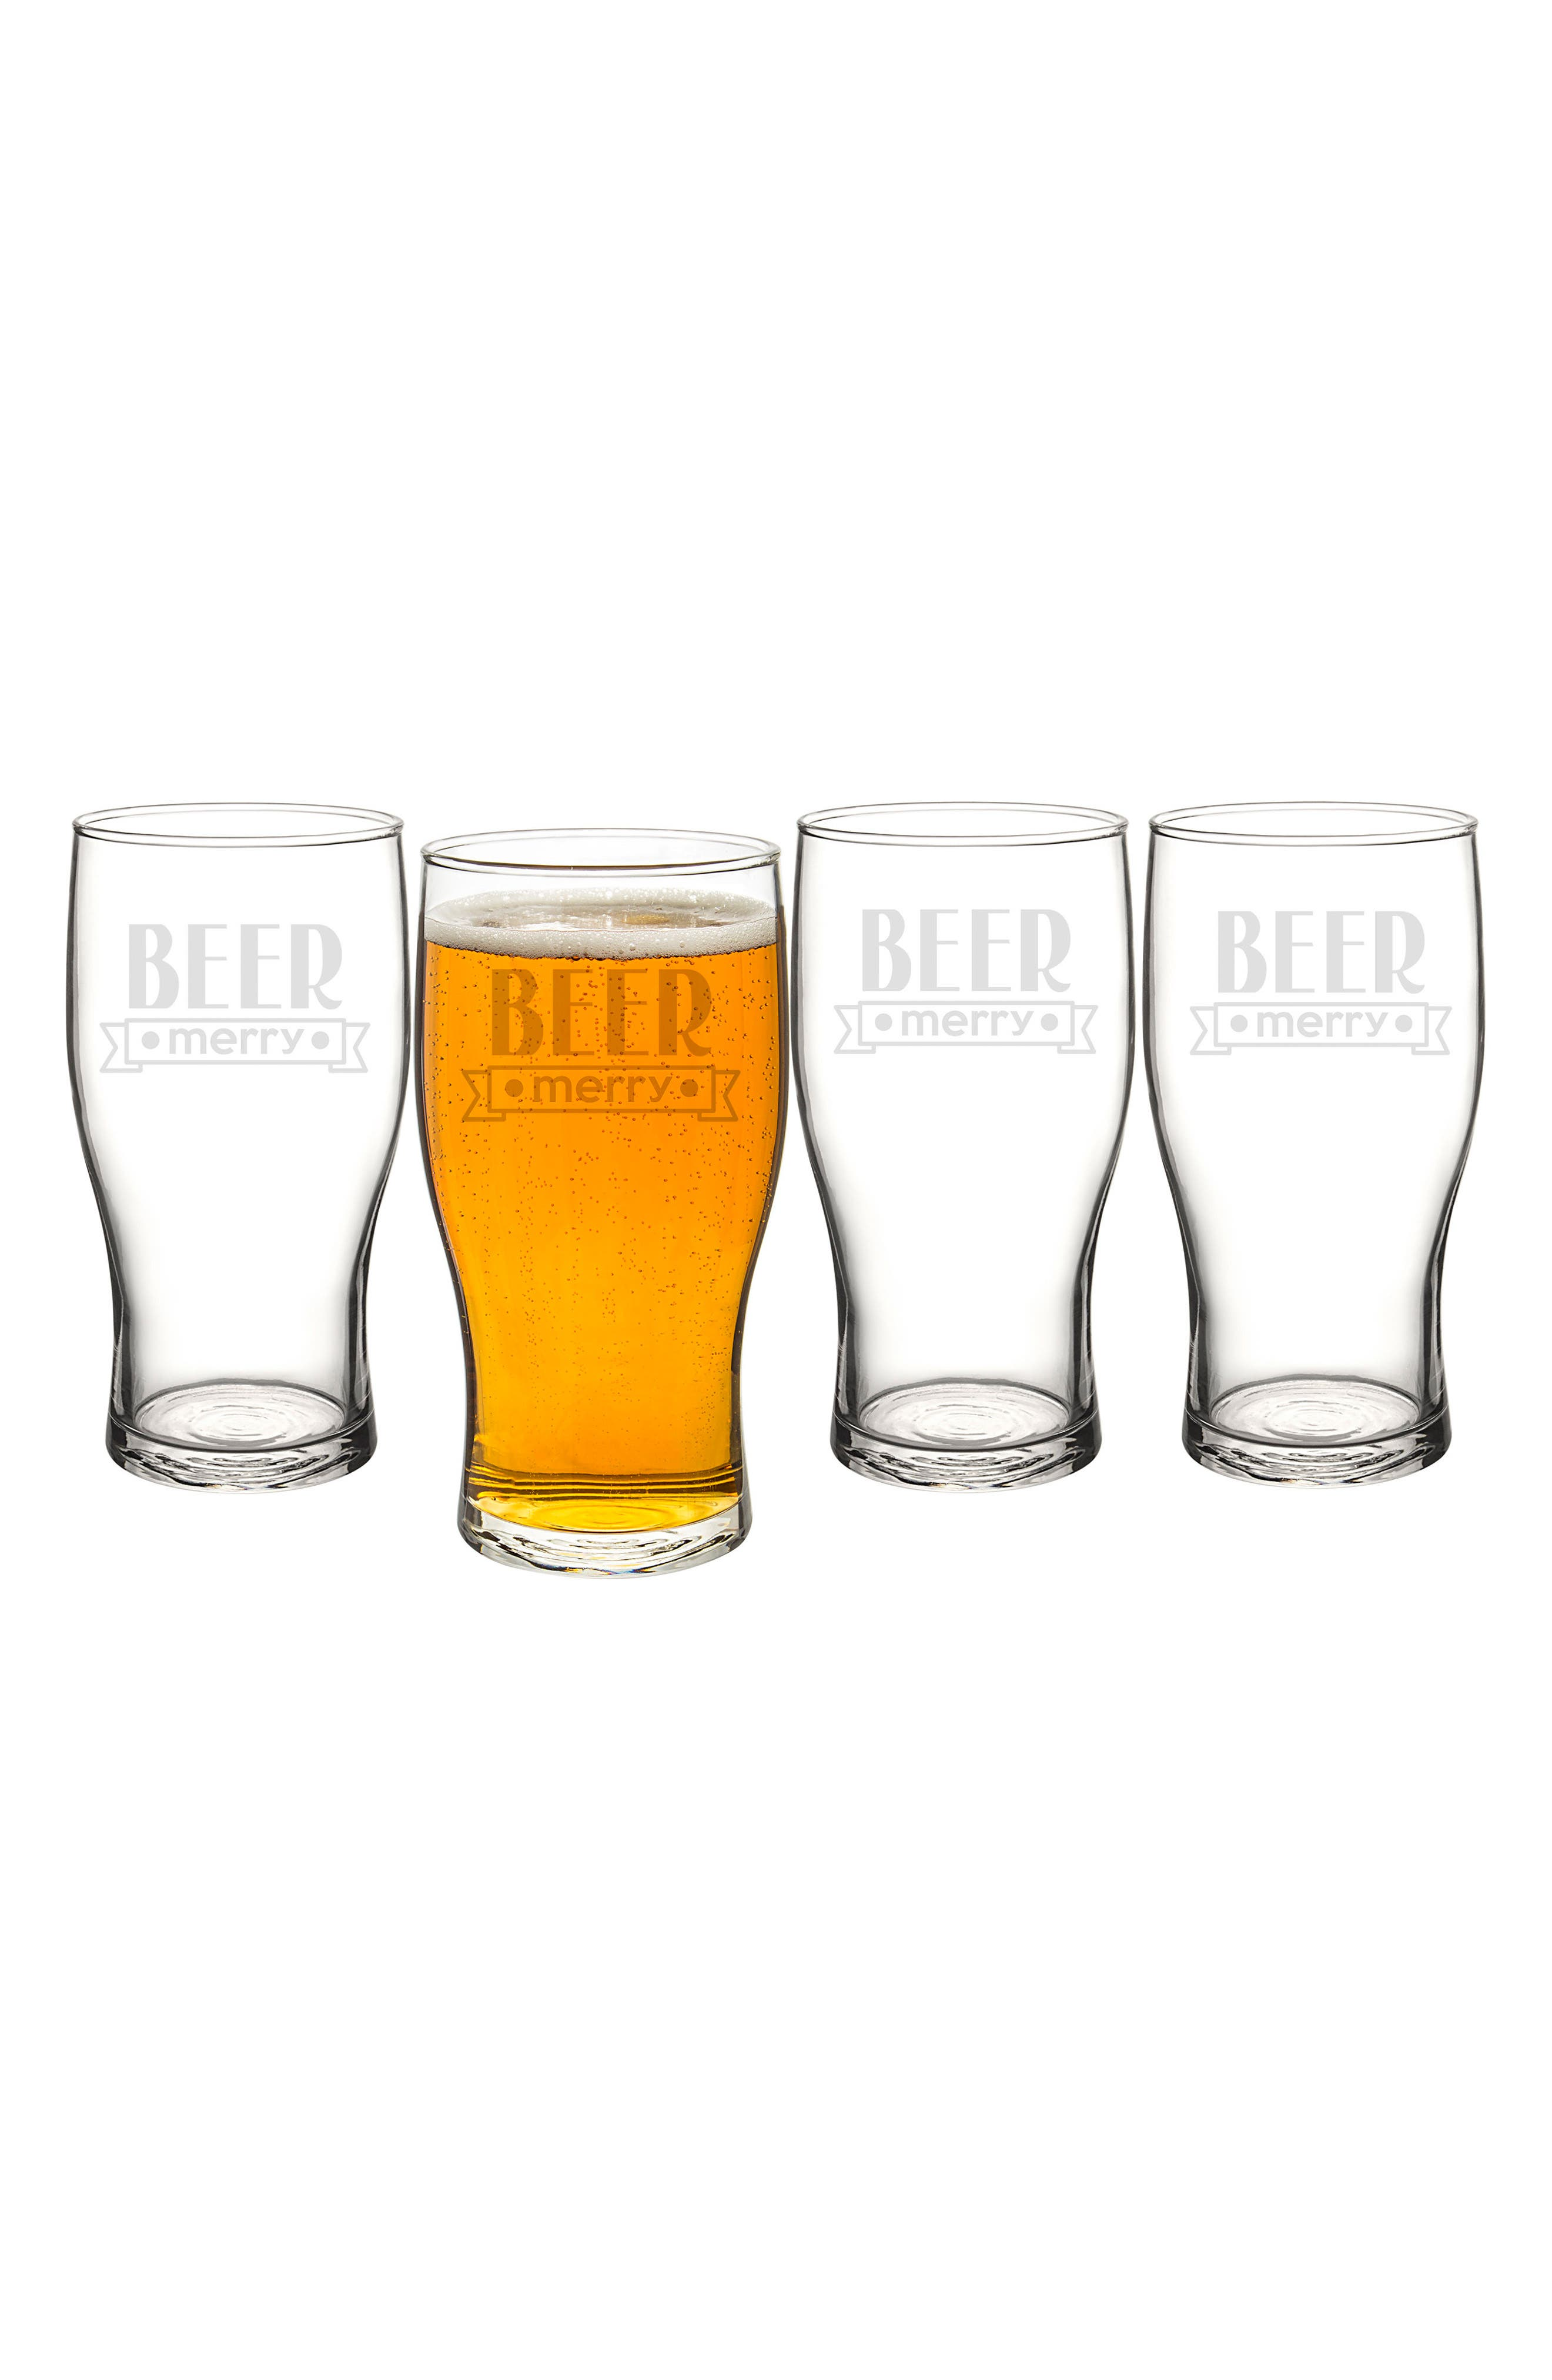 Cathy's Concepts Beer Merry Set of 4 Pilsner Glasses